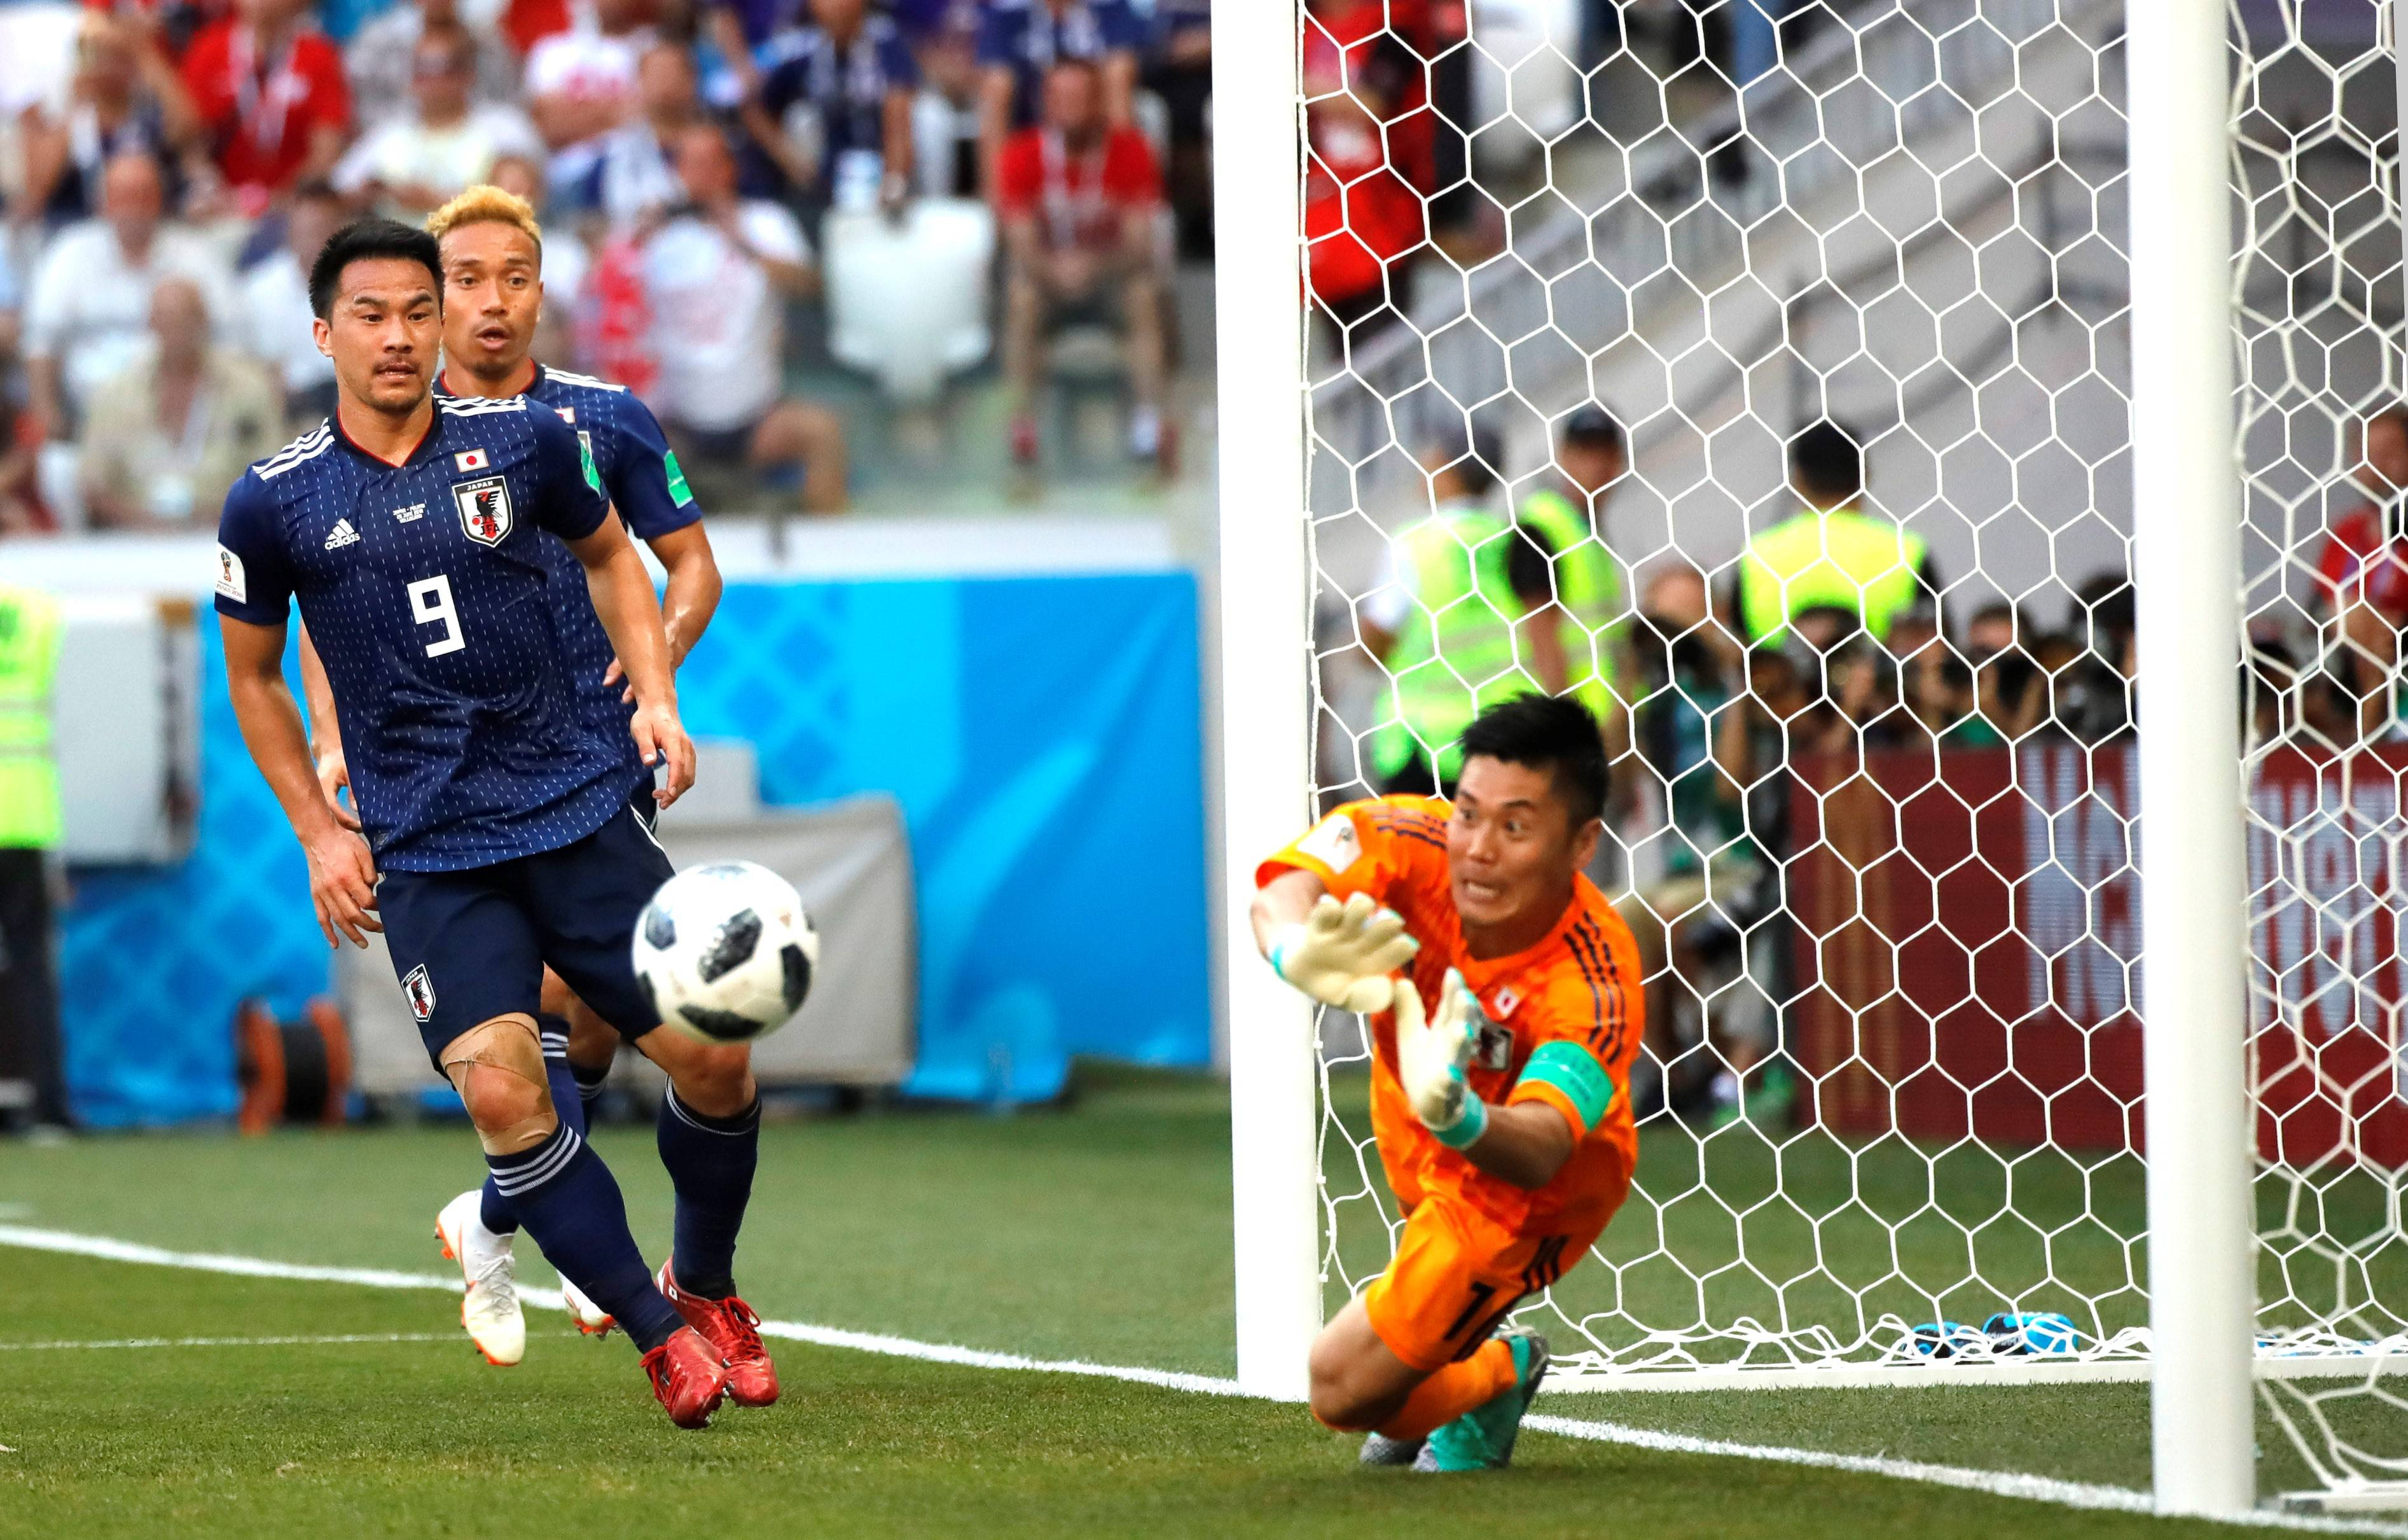 Fair play points send Japan to knockout stage despite Poland loss